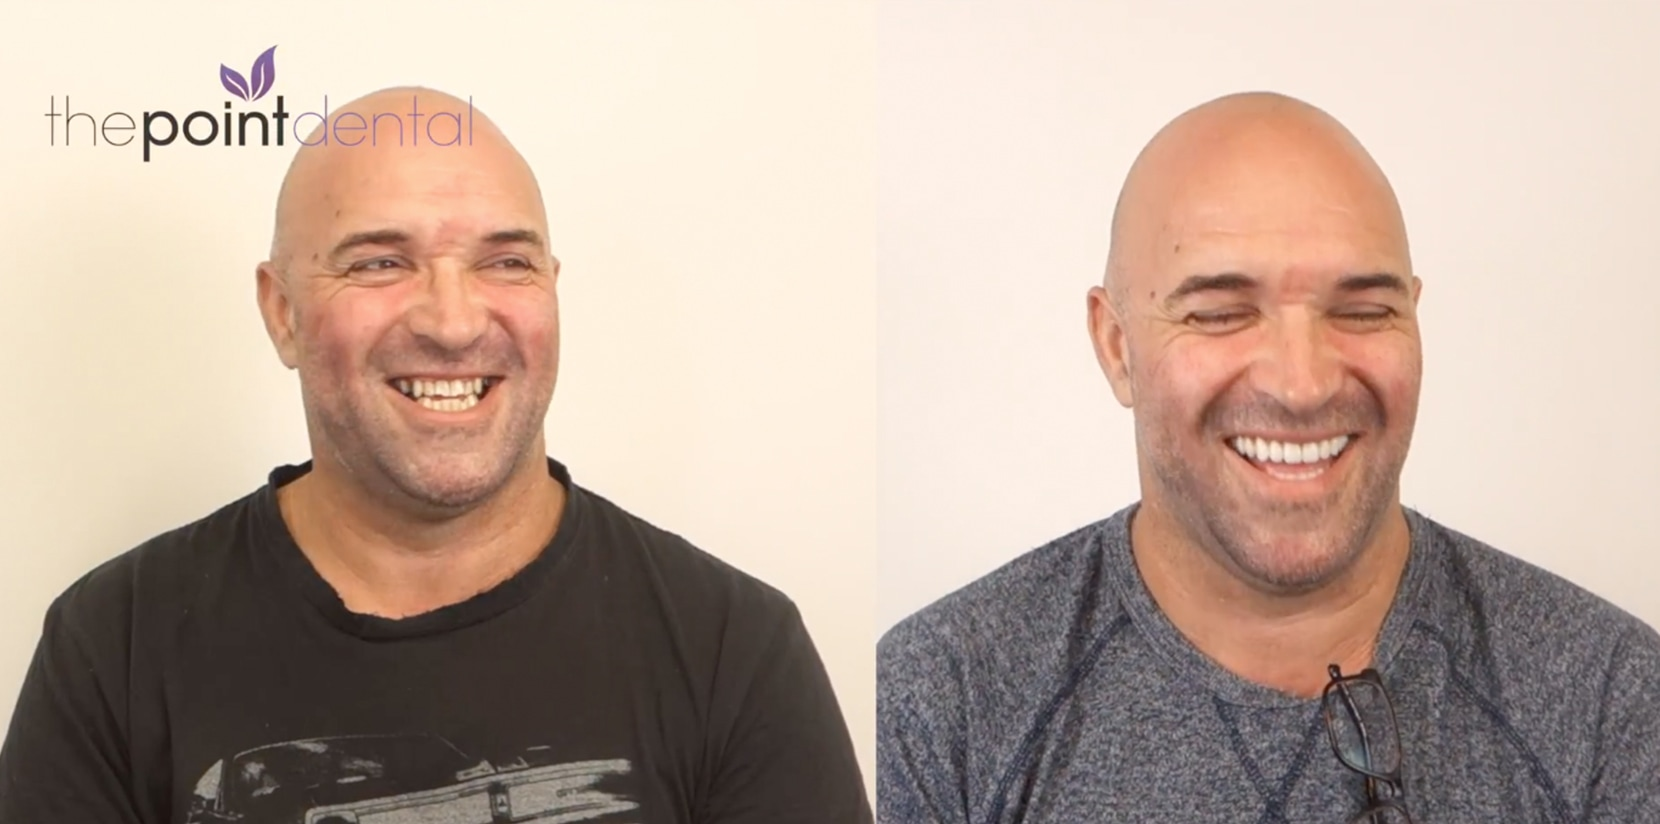 Anthony's Dental Patient Video Journey with The Point Dental